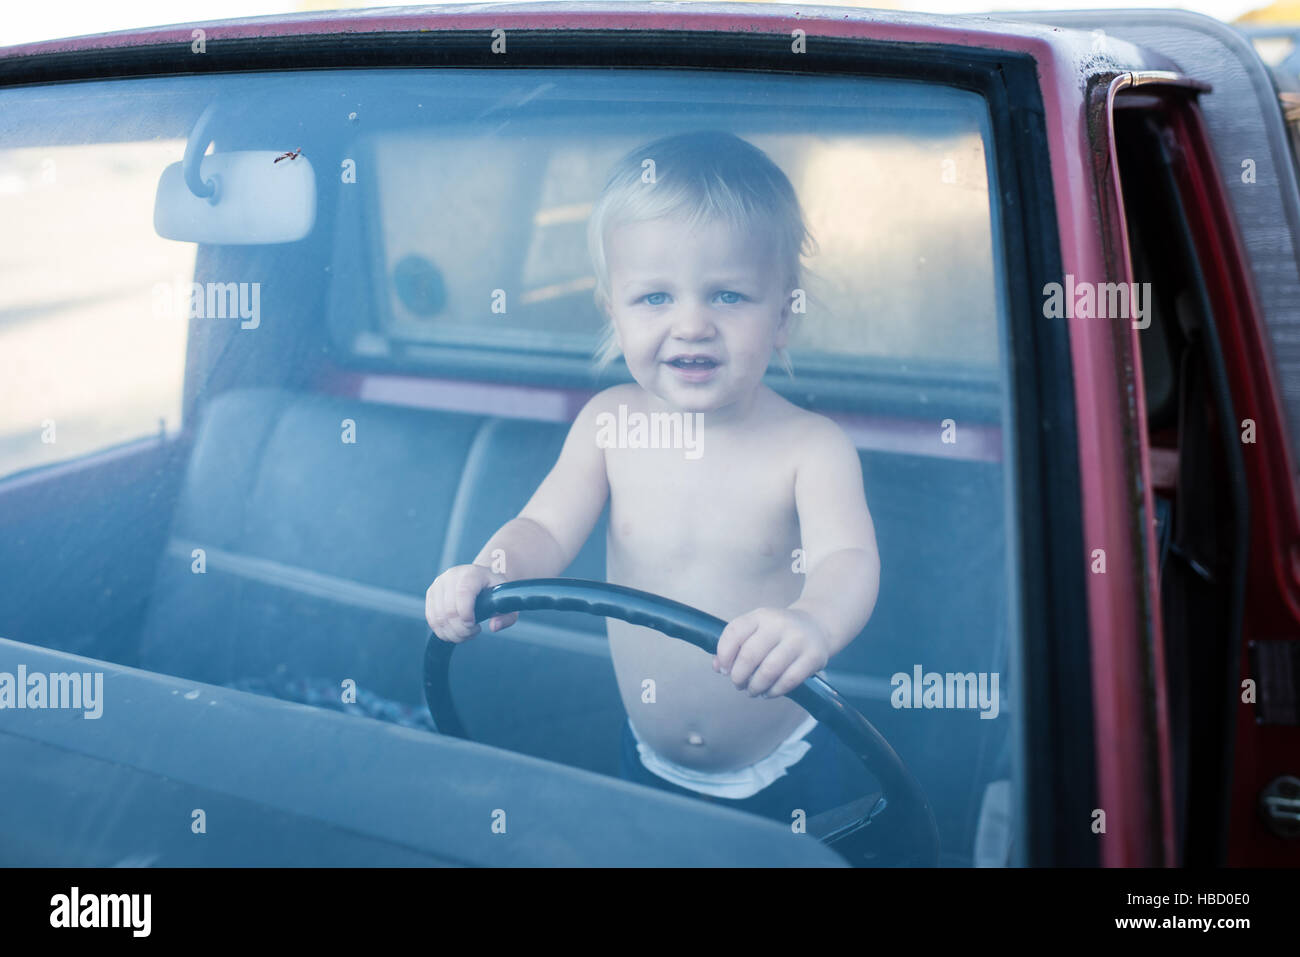 Portrait of male toddler standing in truck holding steering wheel - Stock Image